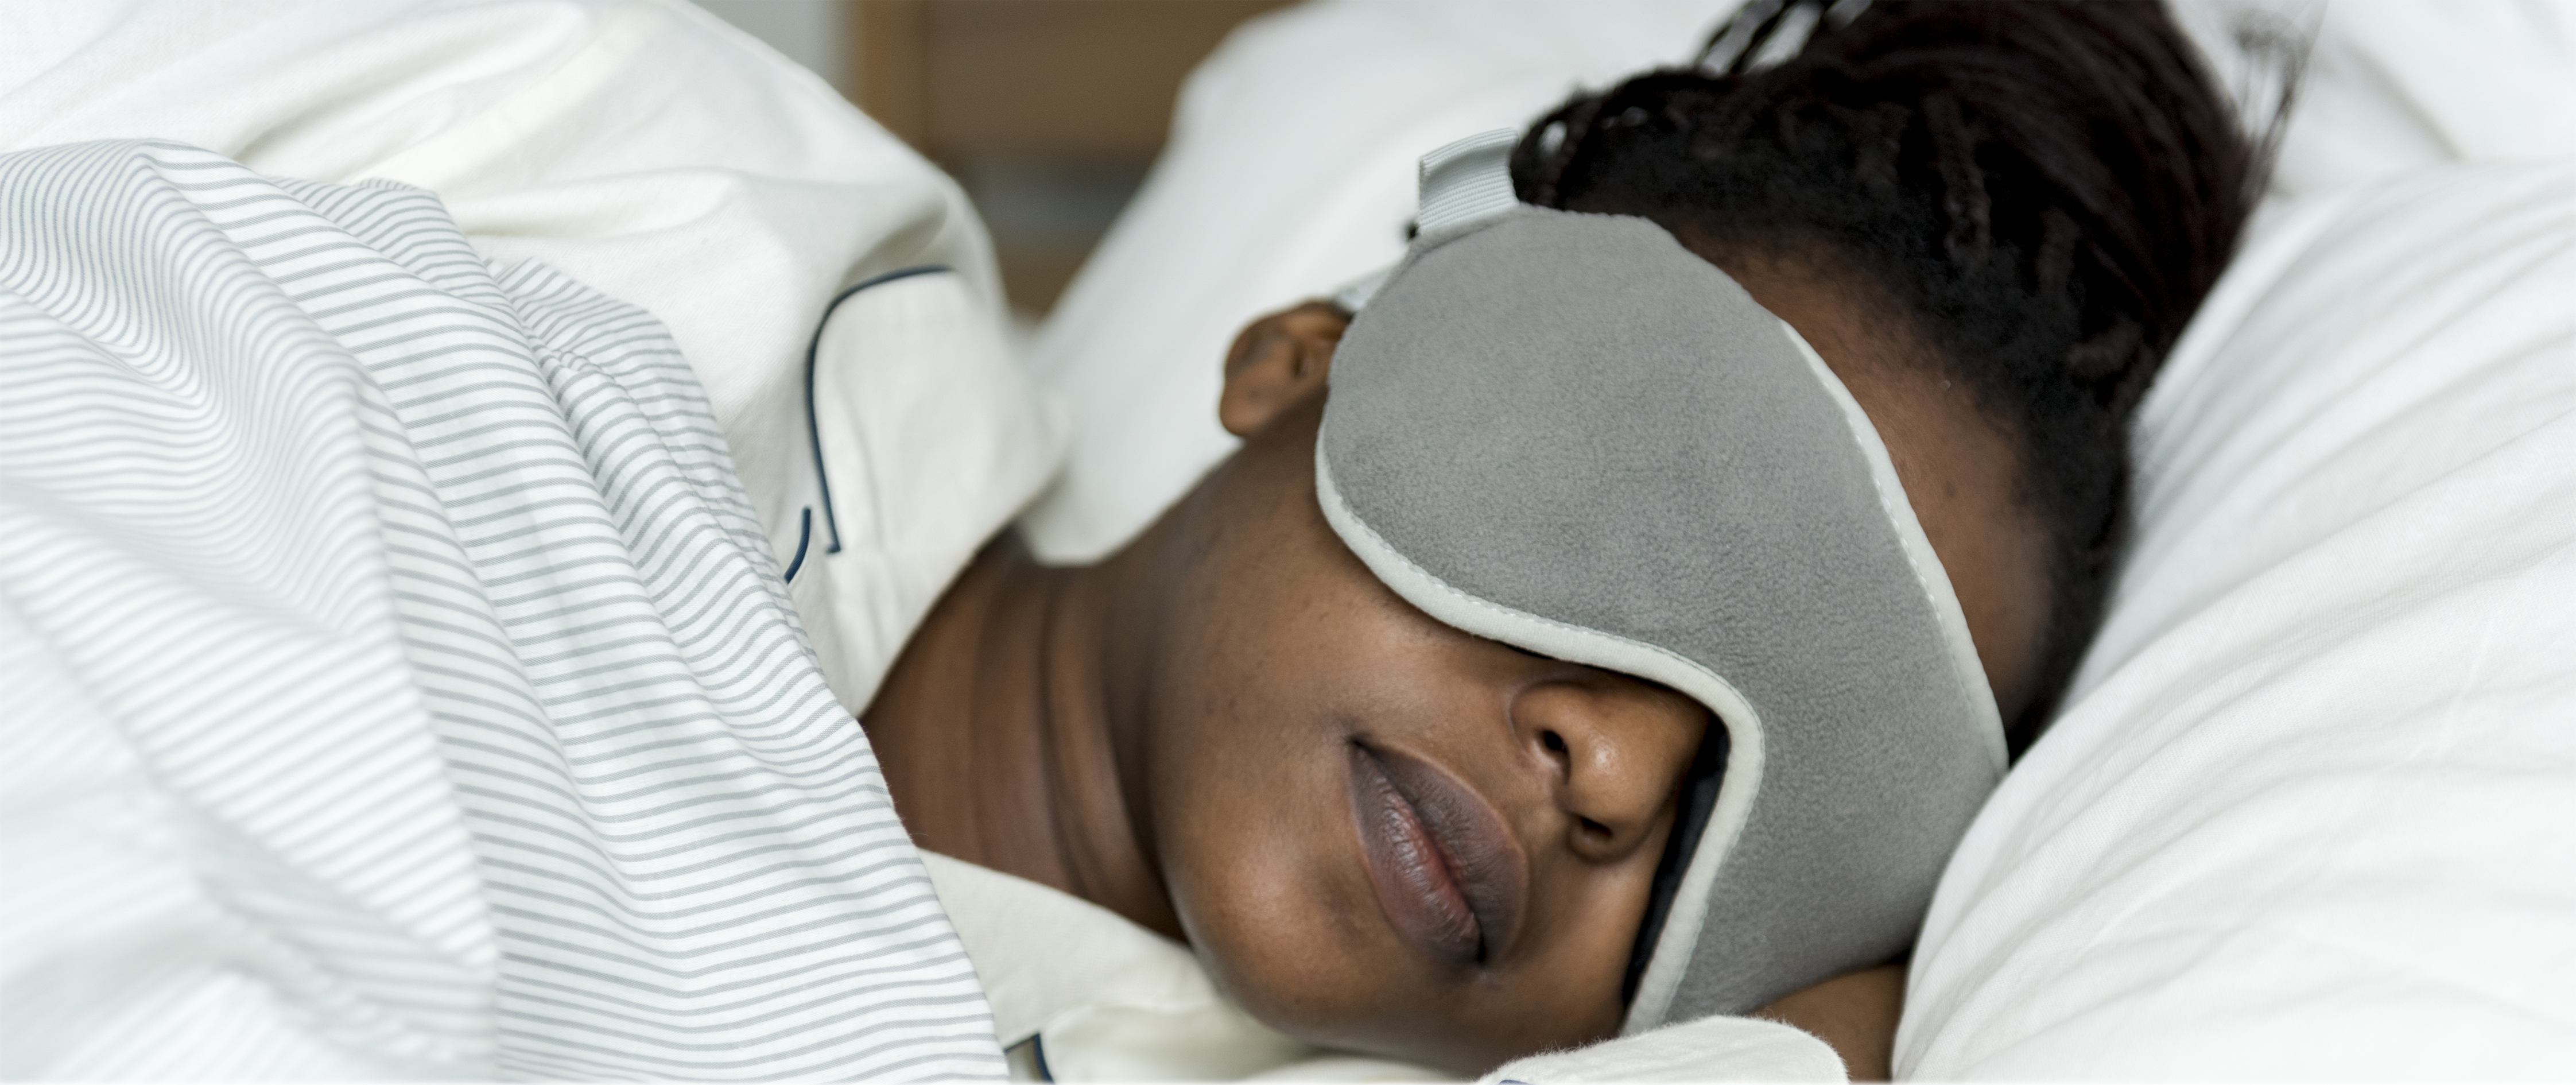 a-woman-sleeping-with-a-sleeping-mask-how-long-can-you-go-without-sleep-2-1